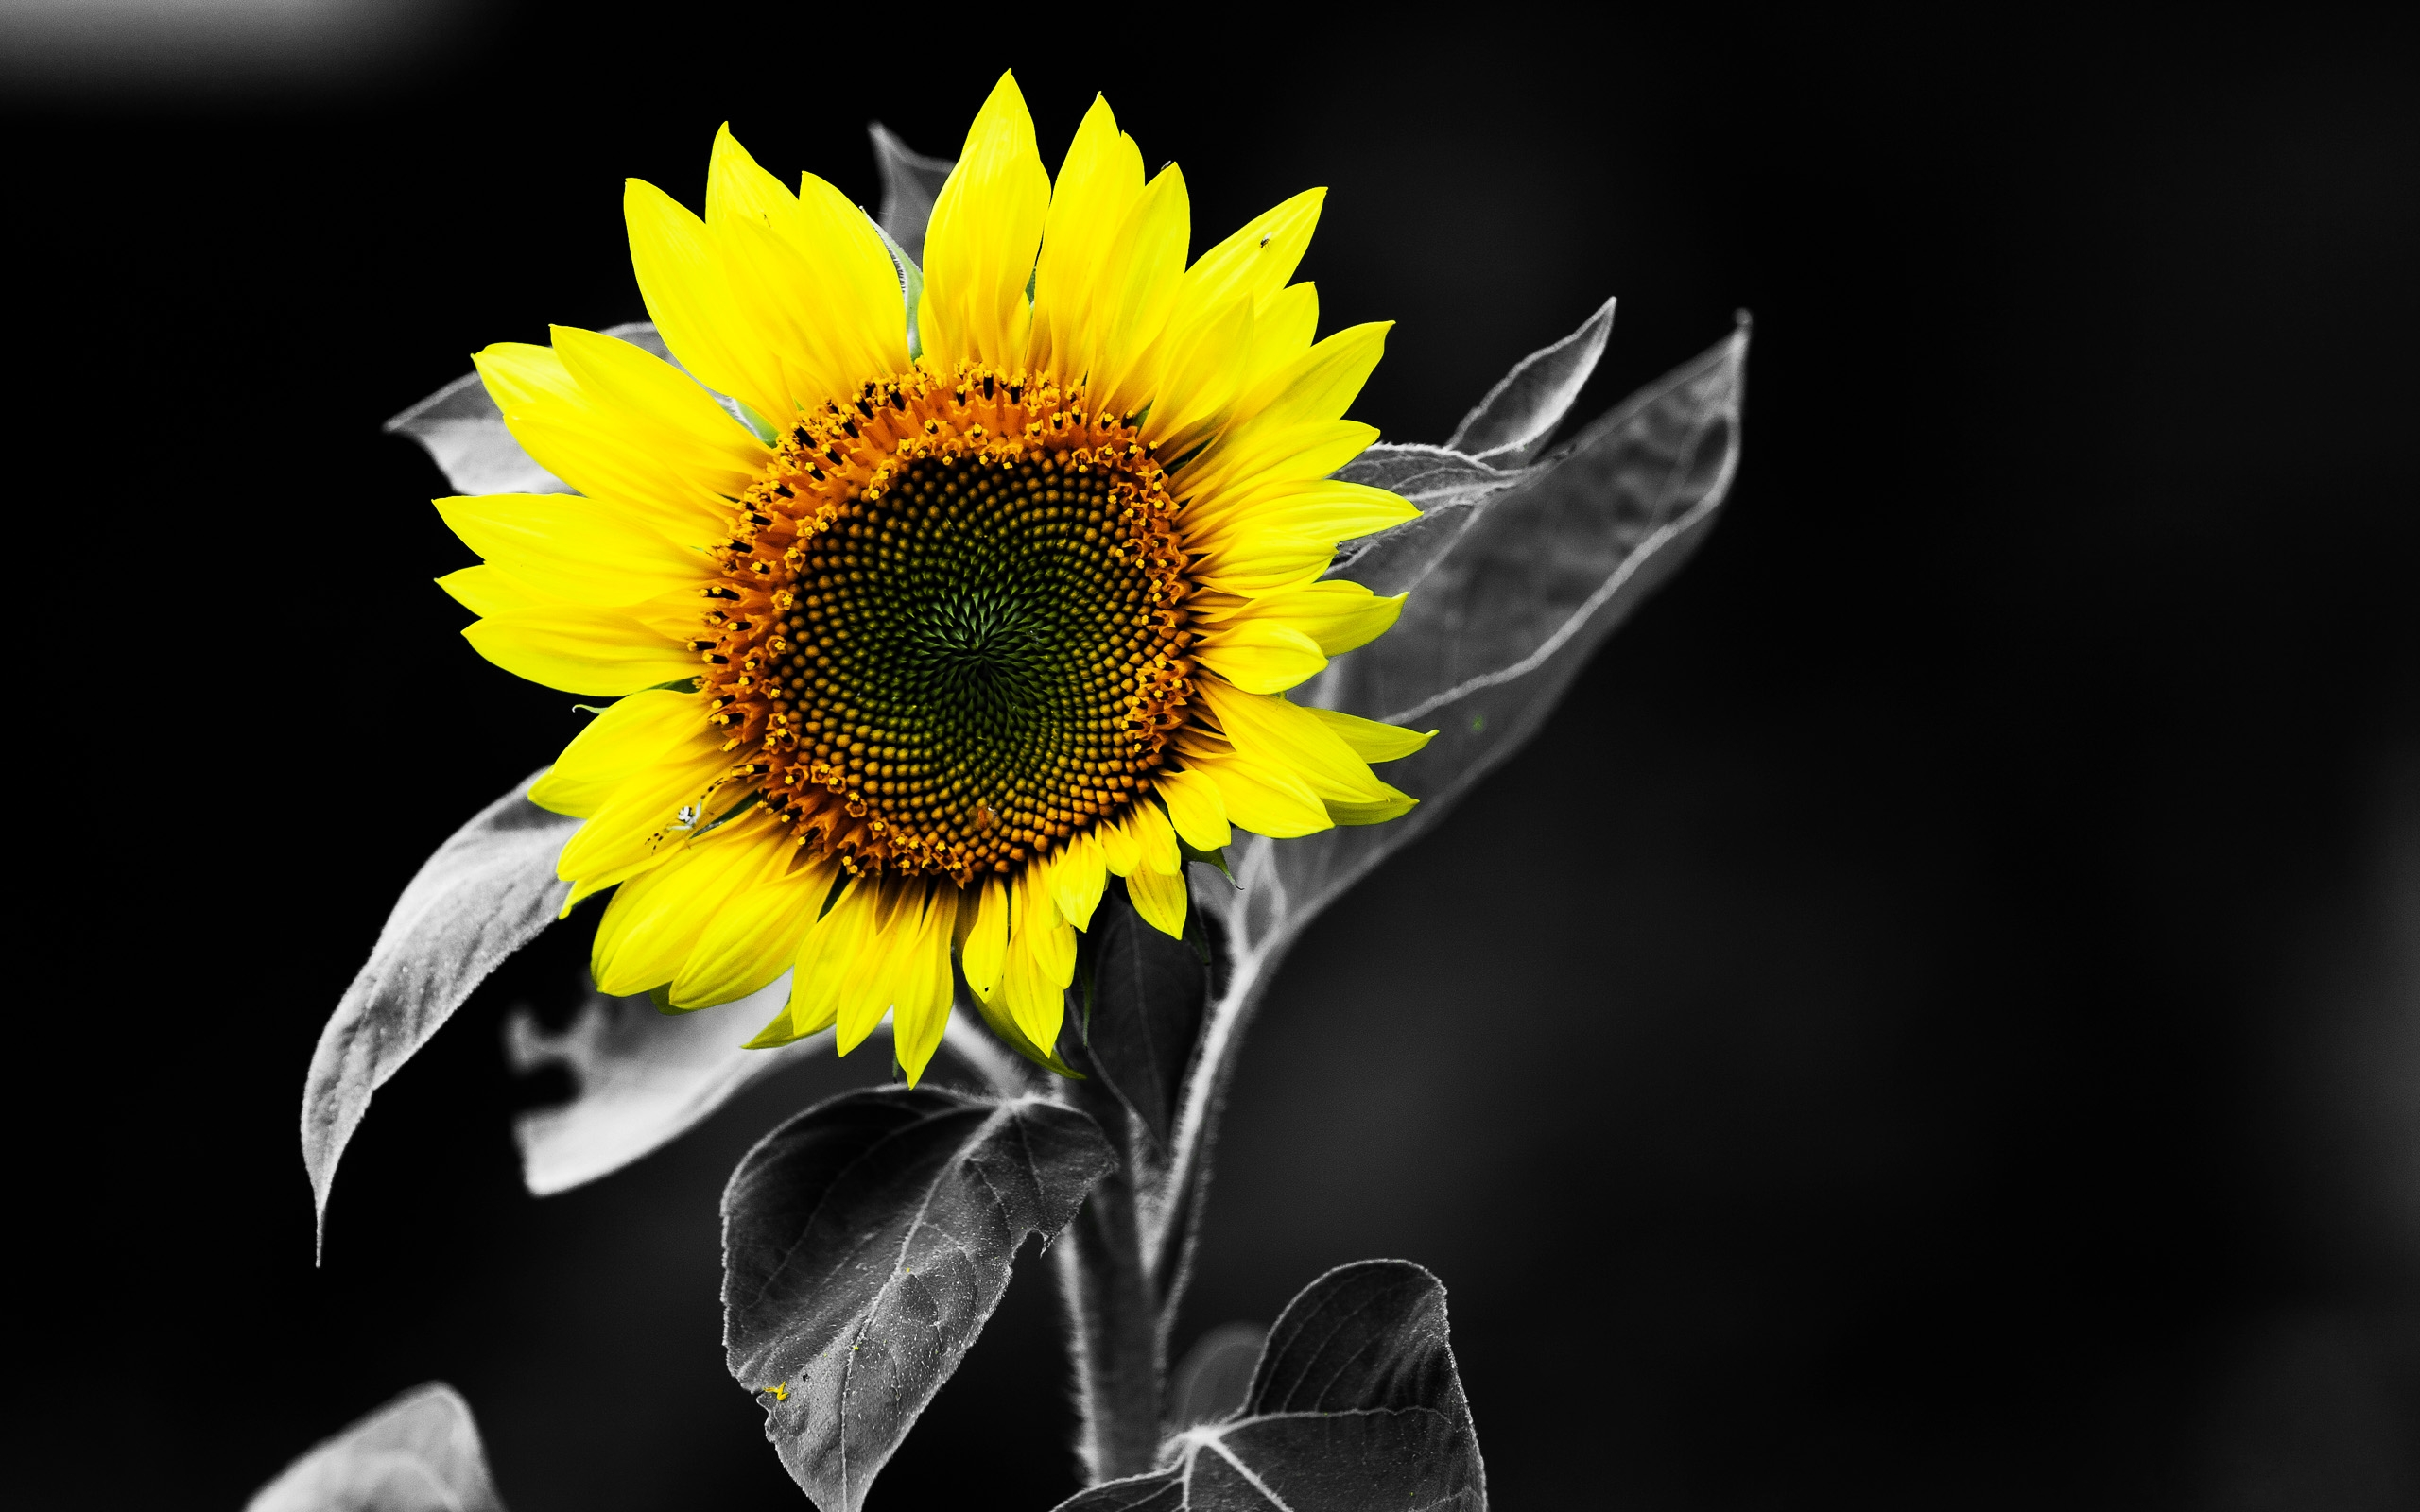 Sunflower HD Wallpaper